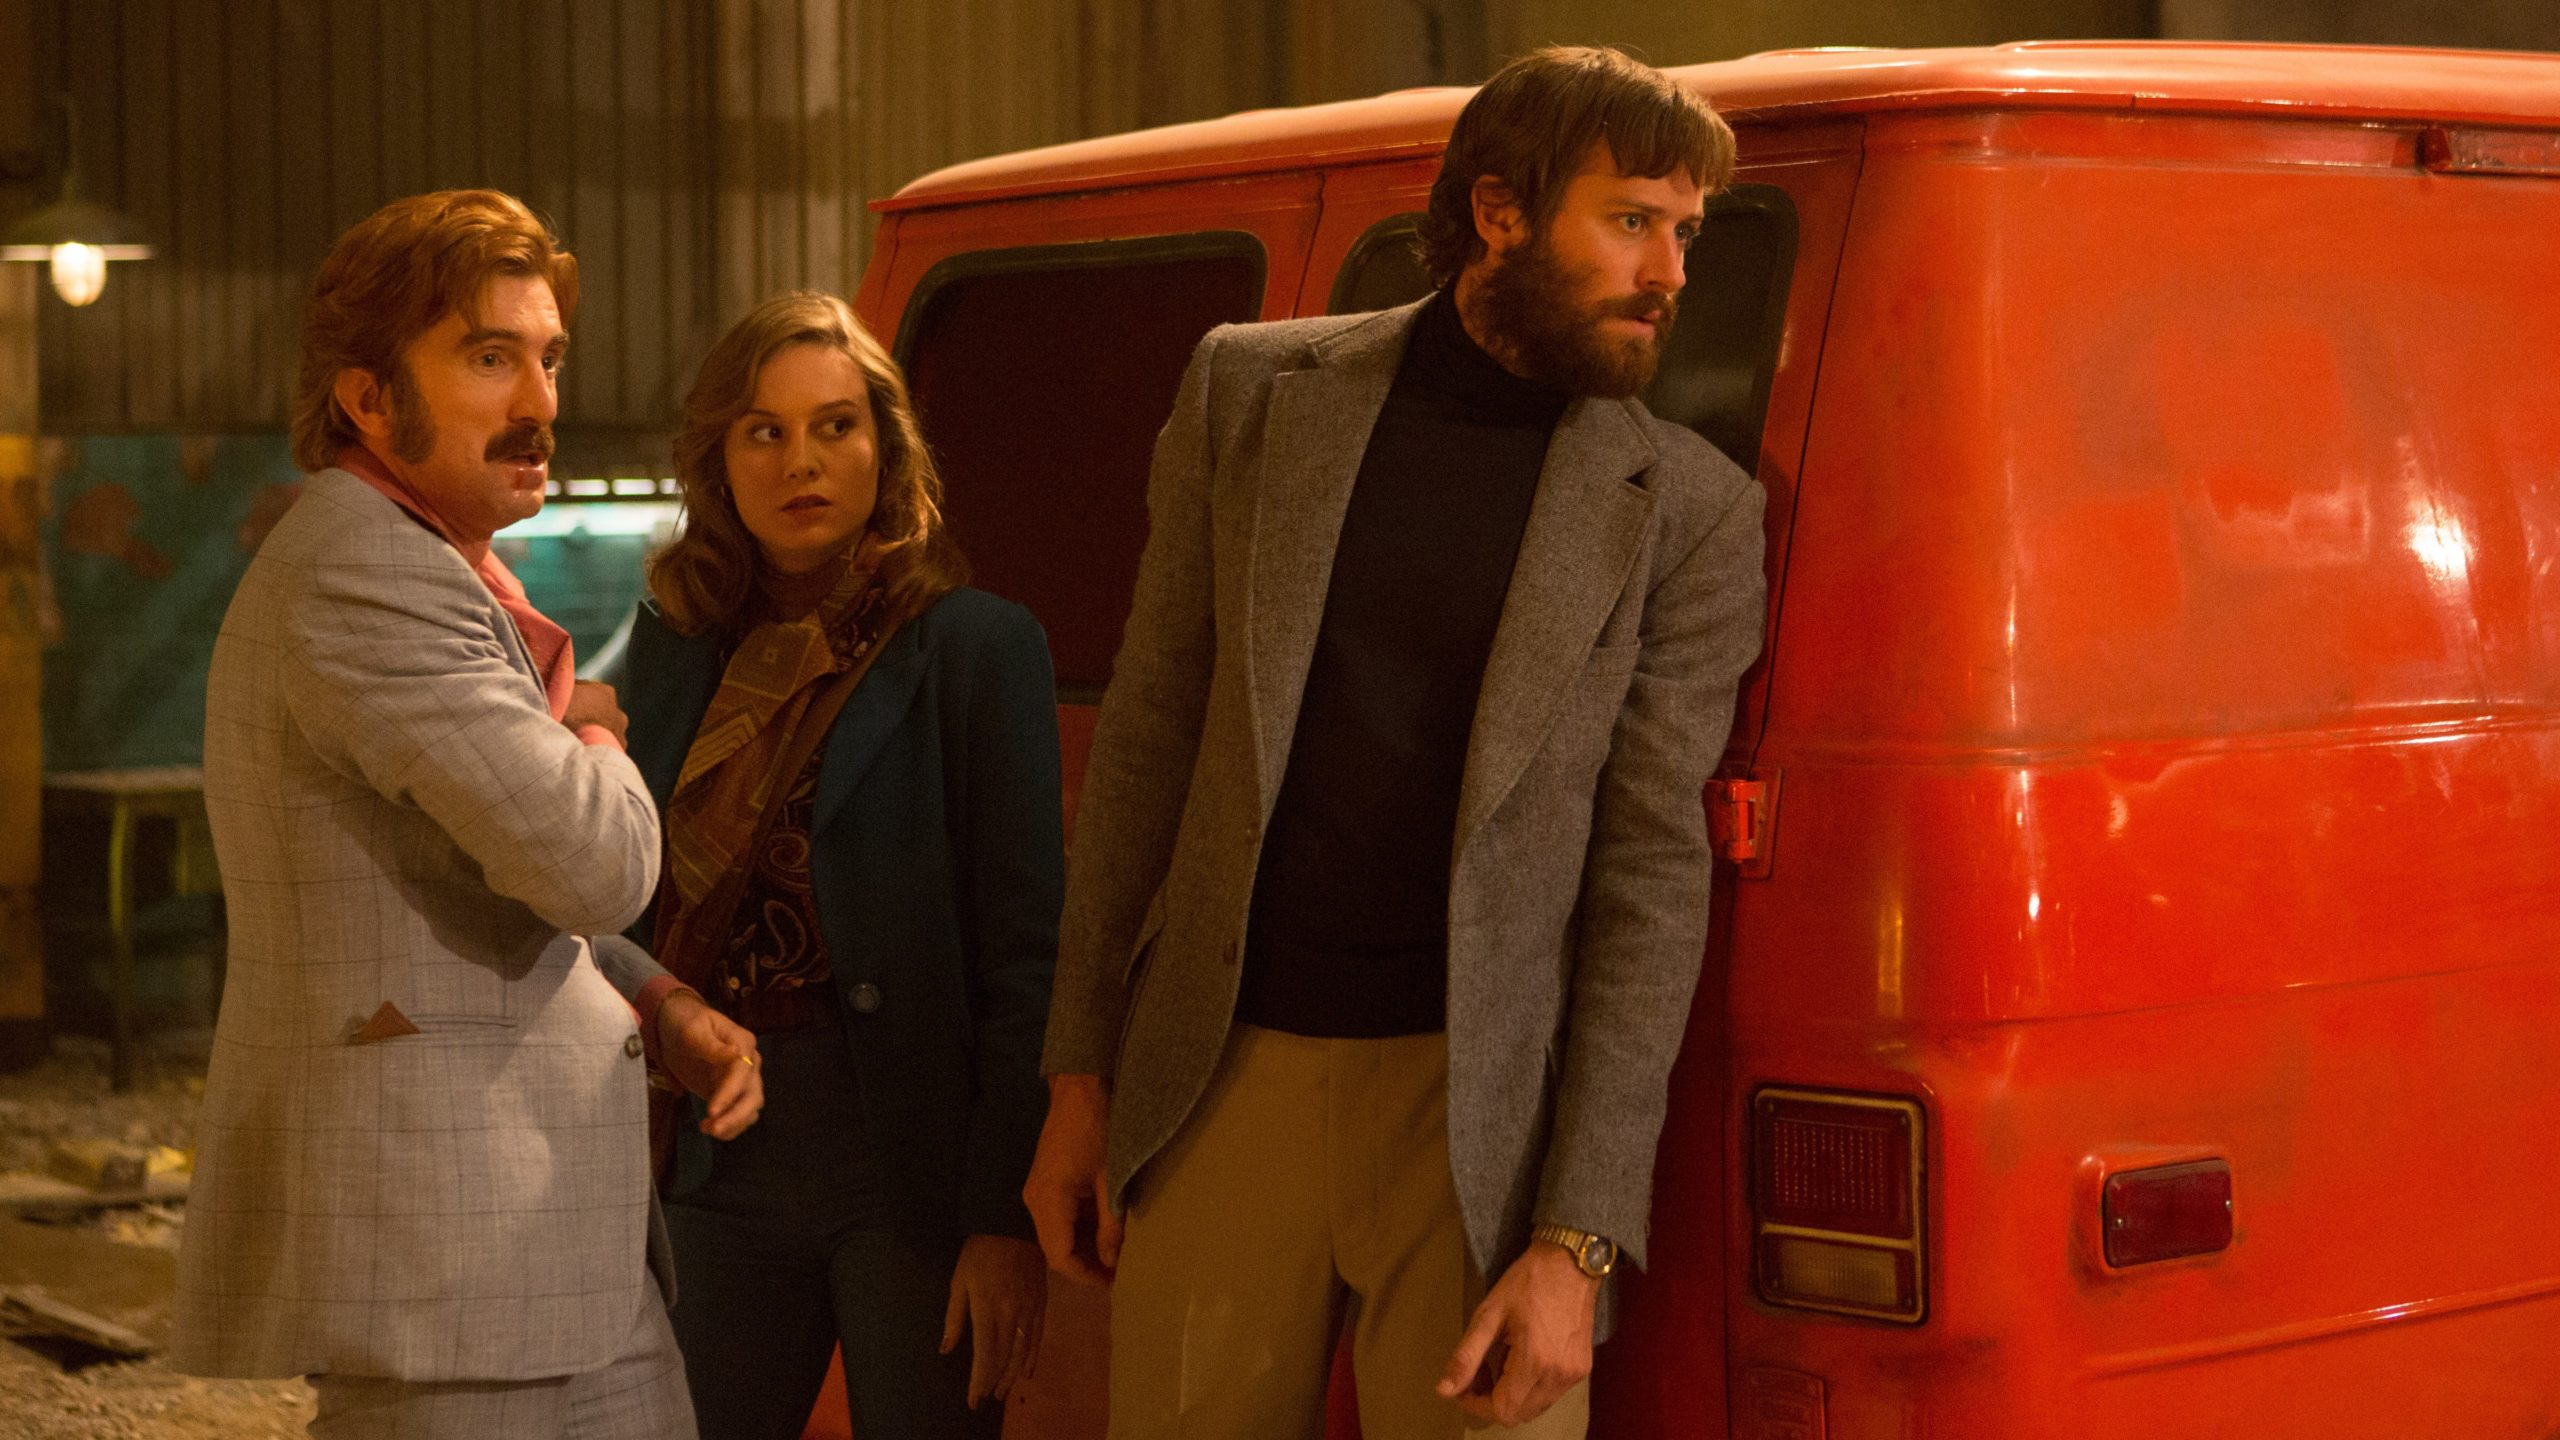 Free Fire Armie Hammer On His Pot Smoking Maniac Character Den Of Geek